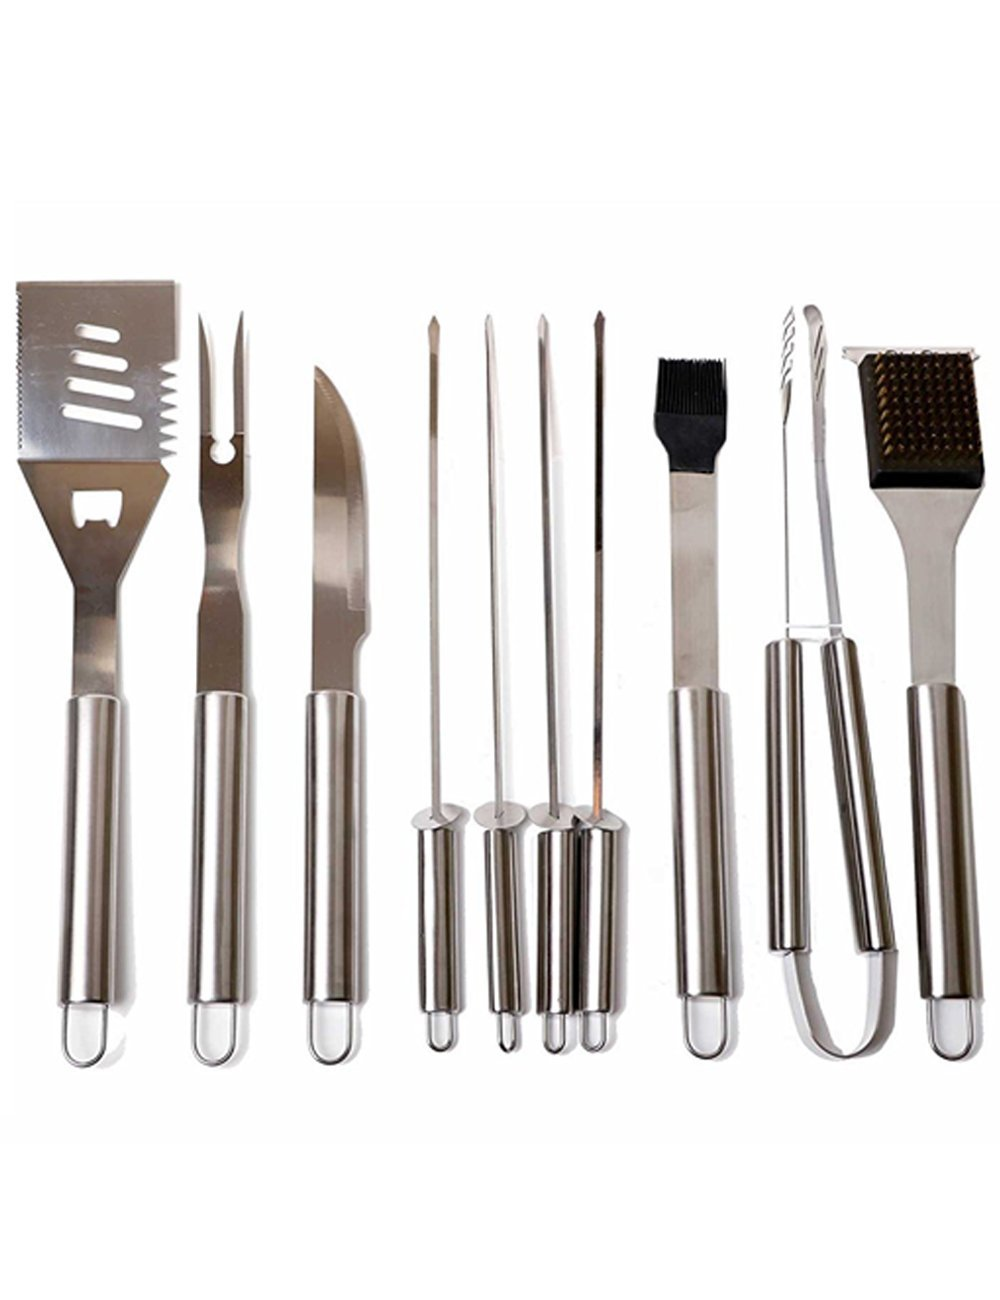 Menschwear BBQ Tool Sets Heavy Duty Stainless Steel Barbecue Accessories Aluminum Case Grill Tools Set (10-Piece) 4 Professional grilling set: grill shovel*1 , fork*1 , knife*1 , tongs*1 , silicone basting brush*1 , grill cleaning brush*1 , skewers*4 . Shovel has a razor sharp serrated edge on one side for easy cutting of meat, a meat tenderizer on the other side, and a built-in bottle opener. Durable and easy to clean: All stainless steel, this 10-piece grill set won¡¯t chip, tarnish or rust. Stylish and safe: Extended stainless handles add elegance and keep your hands away from the flames.